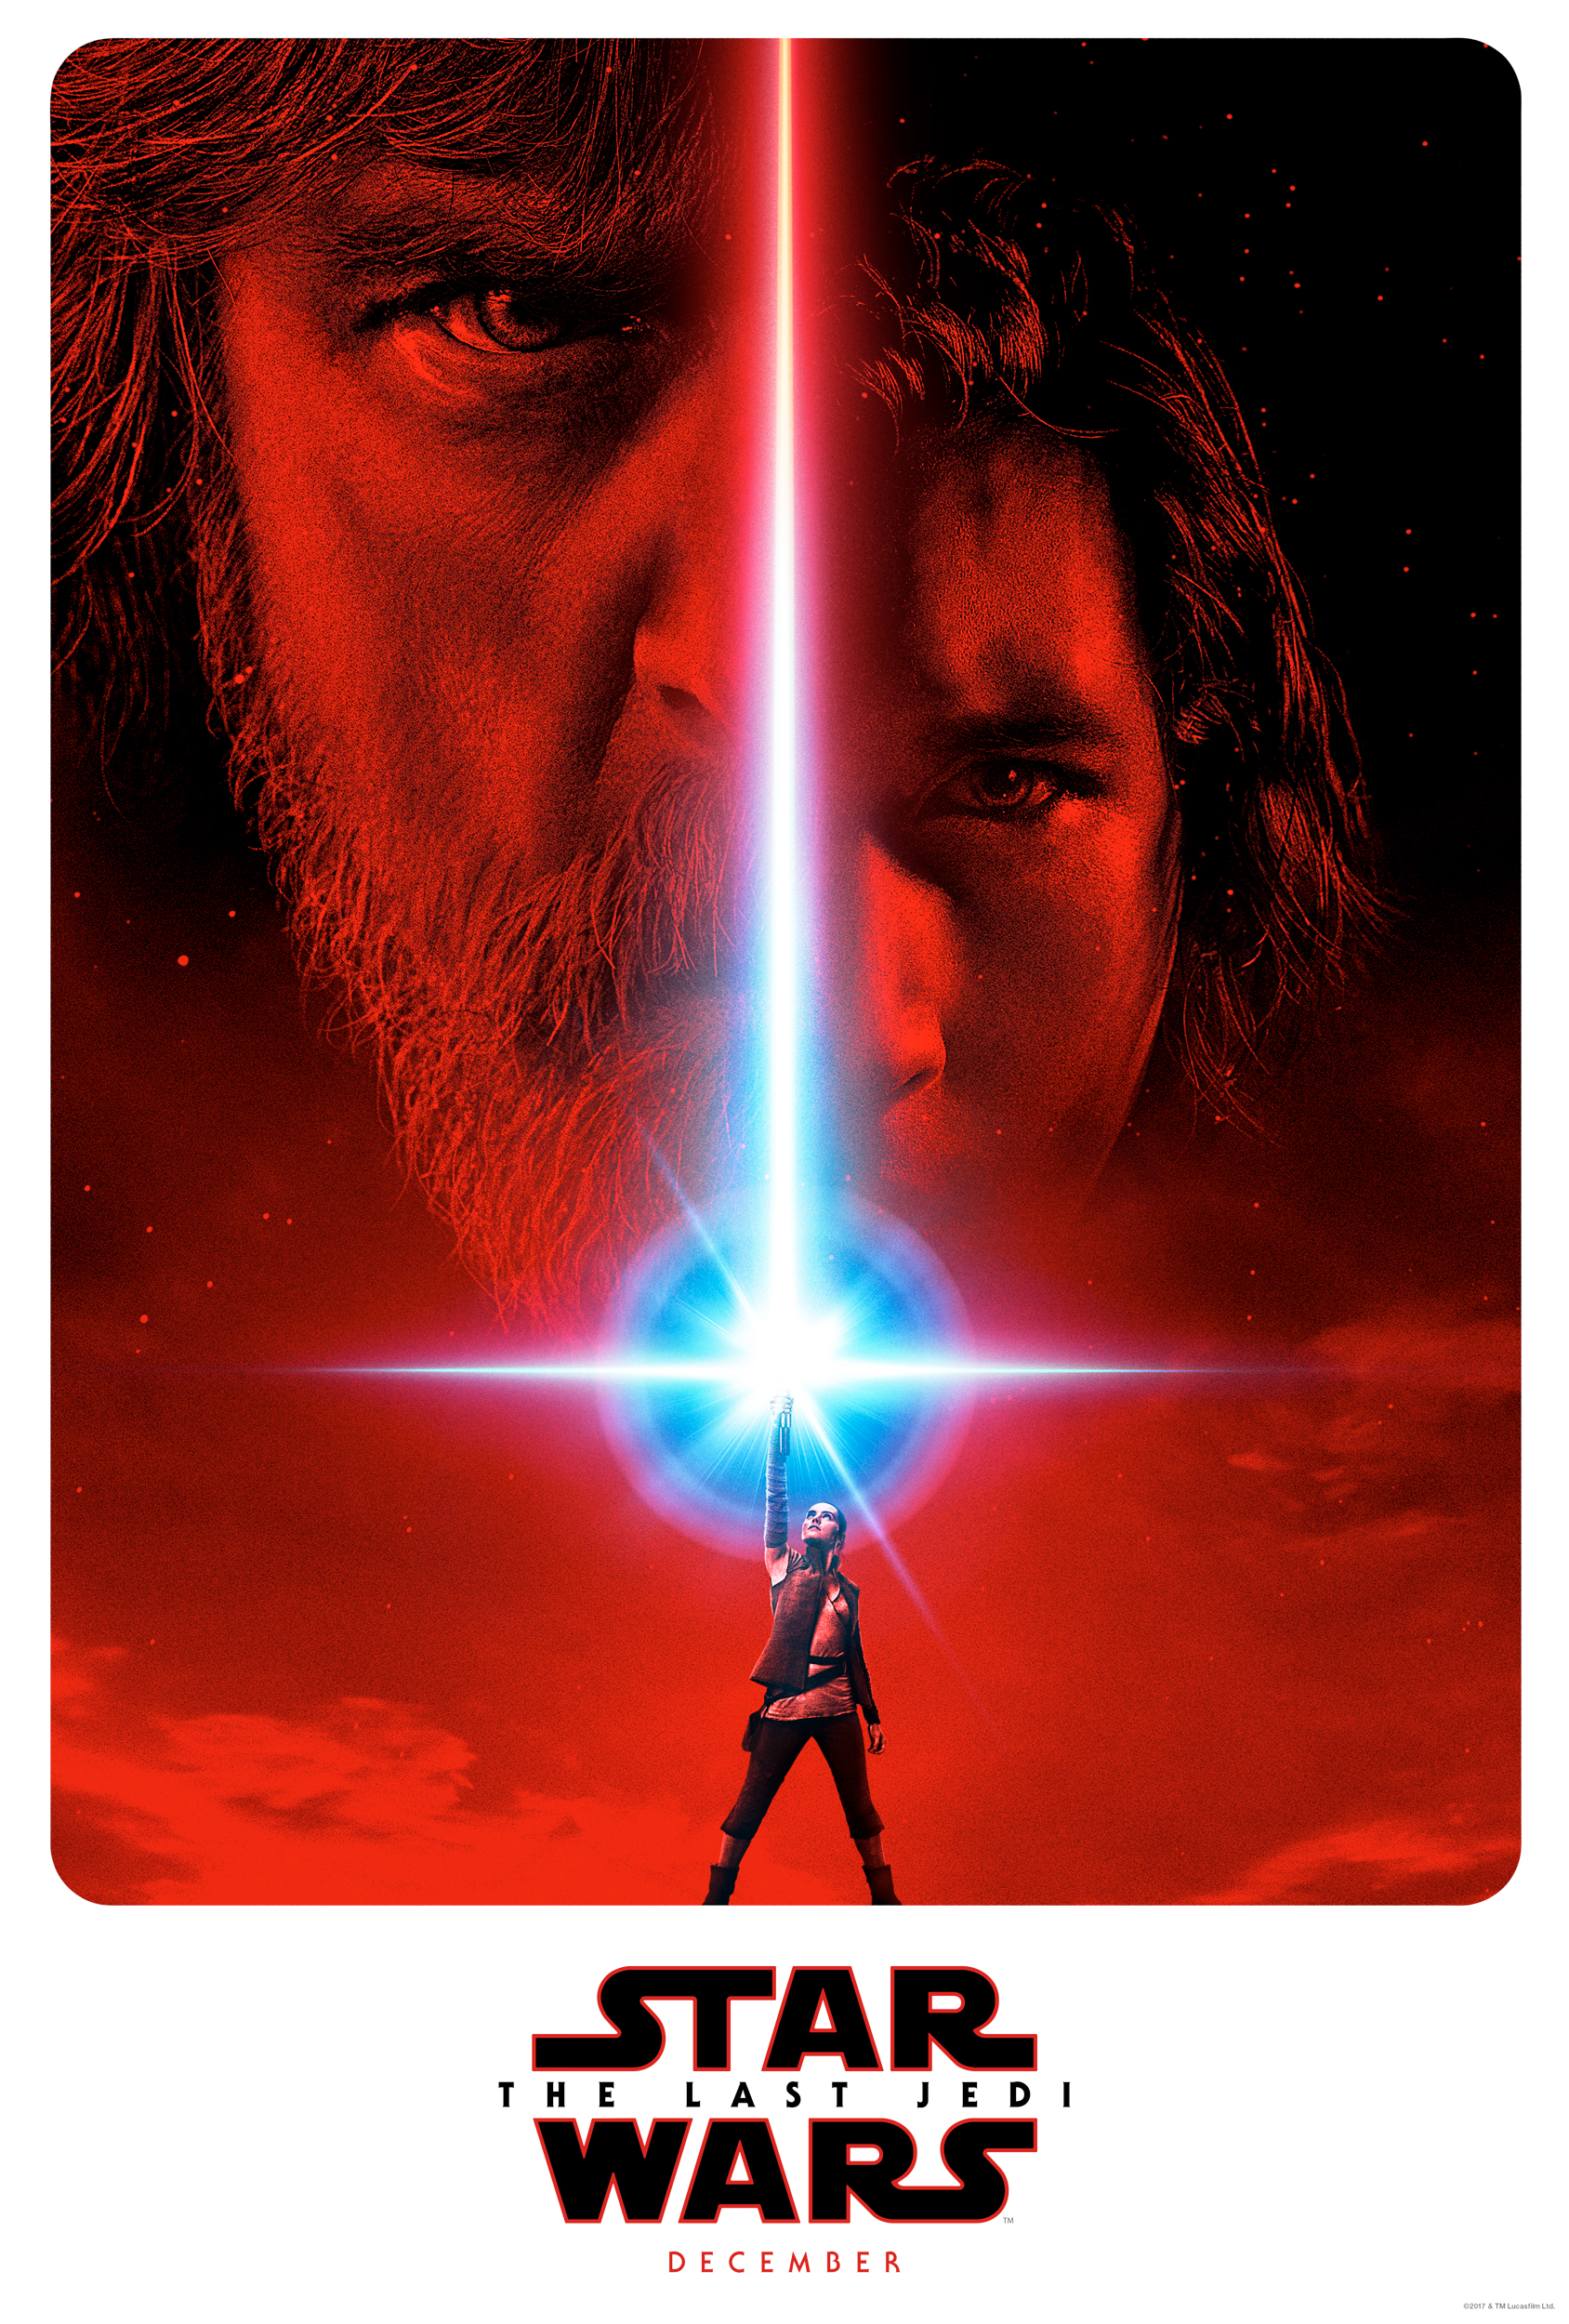 [Image: the-last-jedi-poster-hd.jpg]